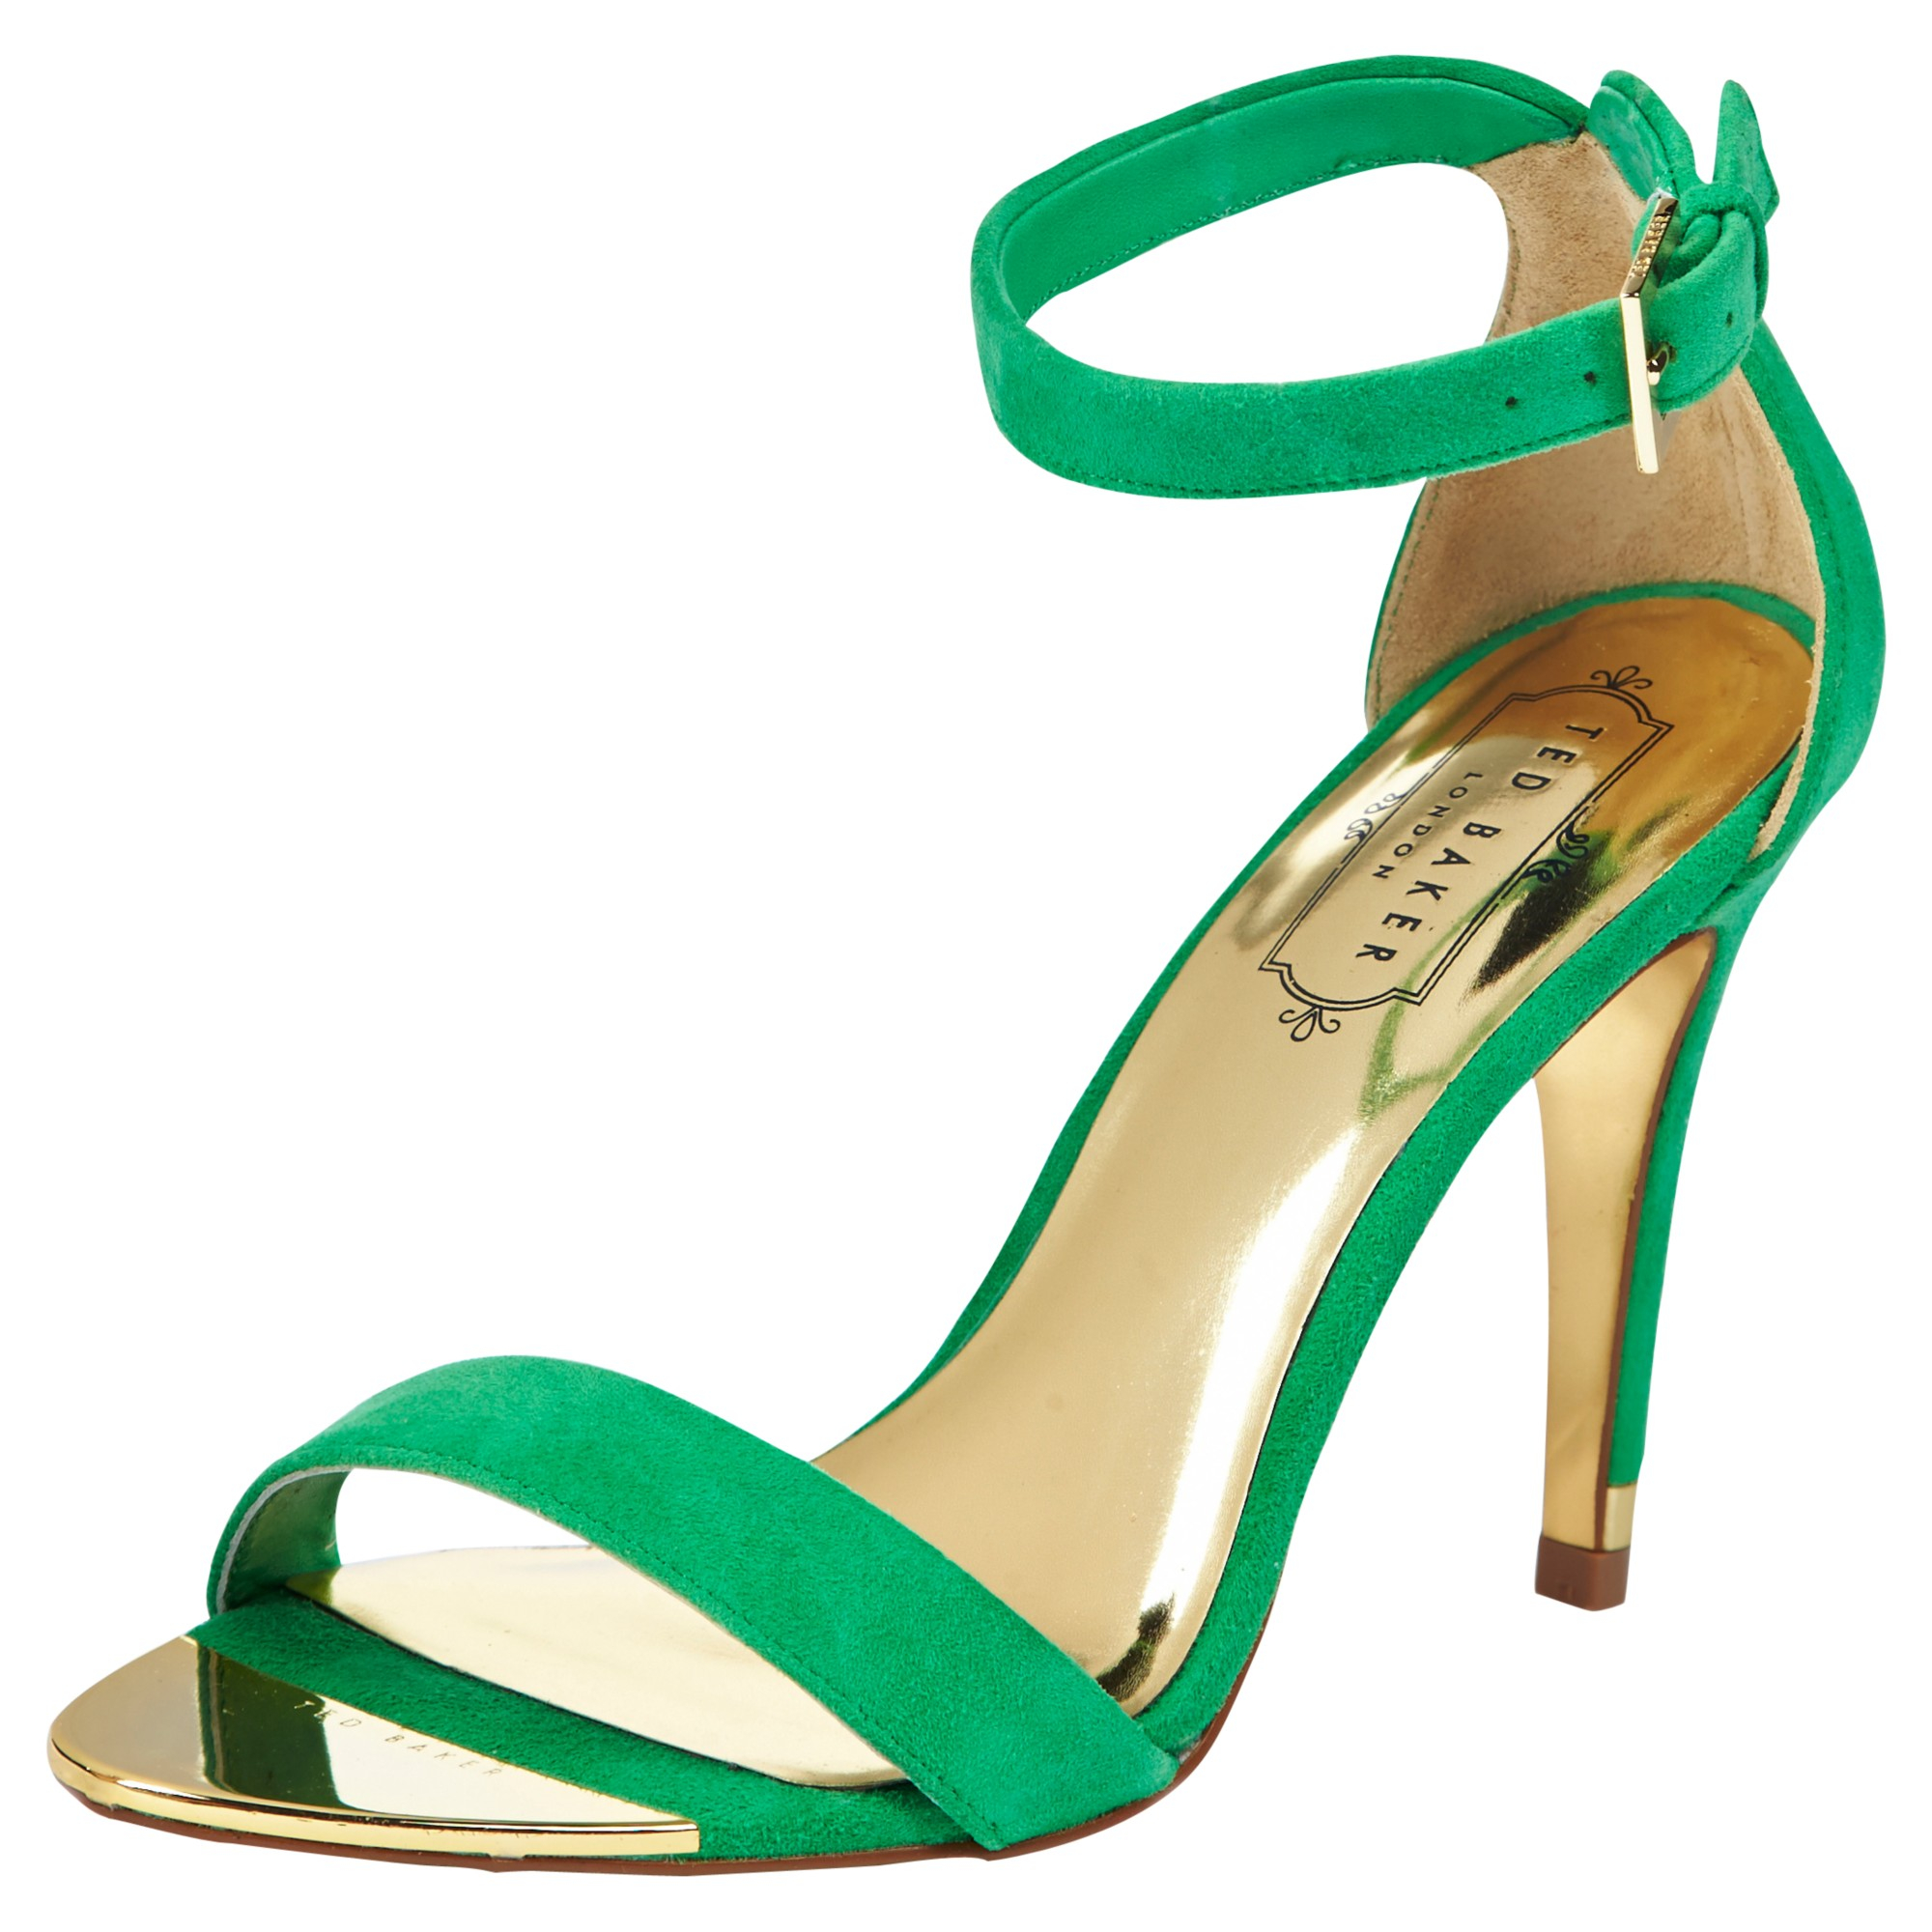 84dbaf0058d4c9 Ted Baker Juliennas High Heeled Sandals in Green - Lyst